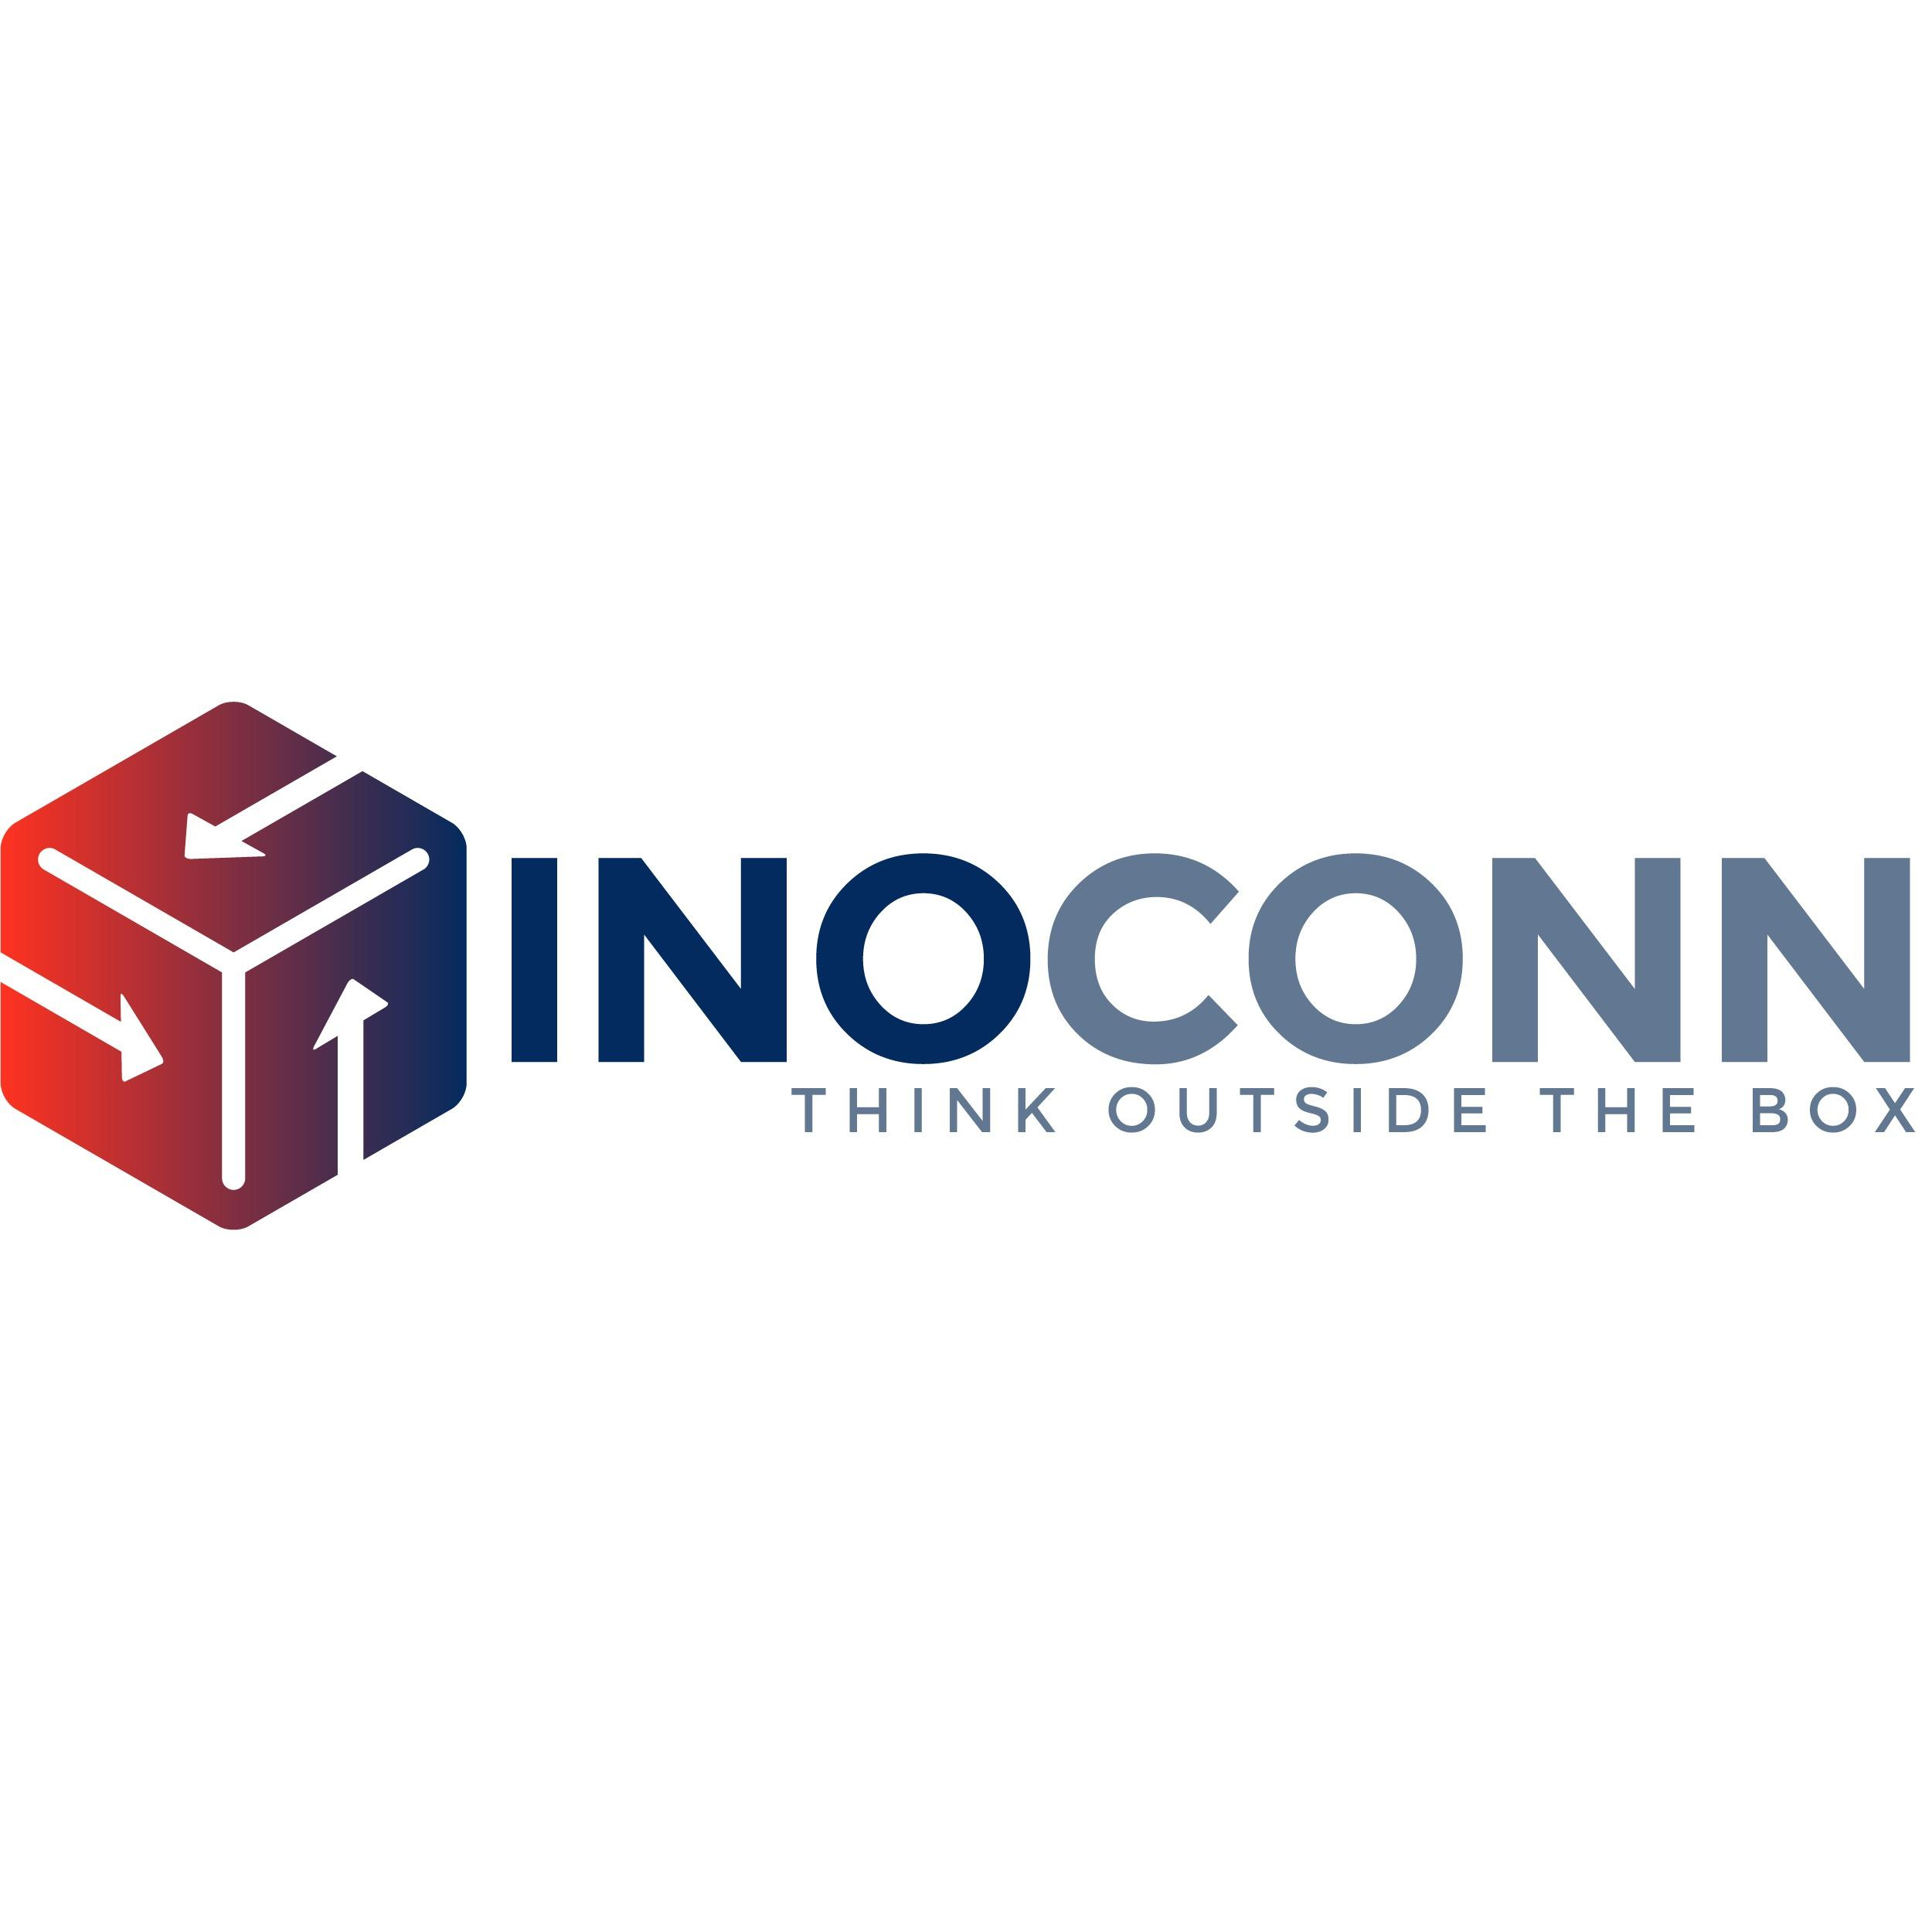 Inoconn - Managed IT Services for Small Business